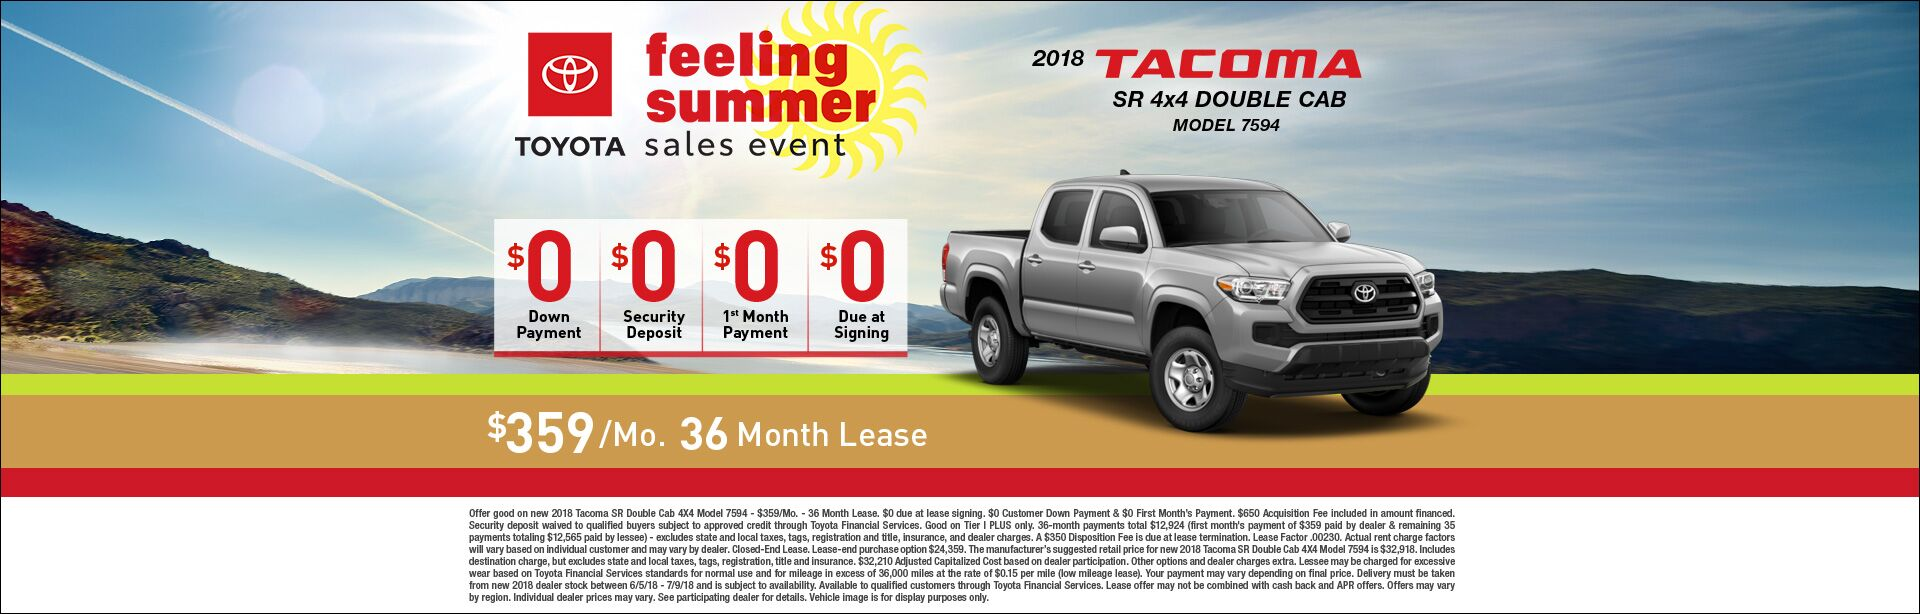 Feeling Summer Tacoma Lease